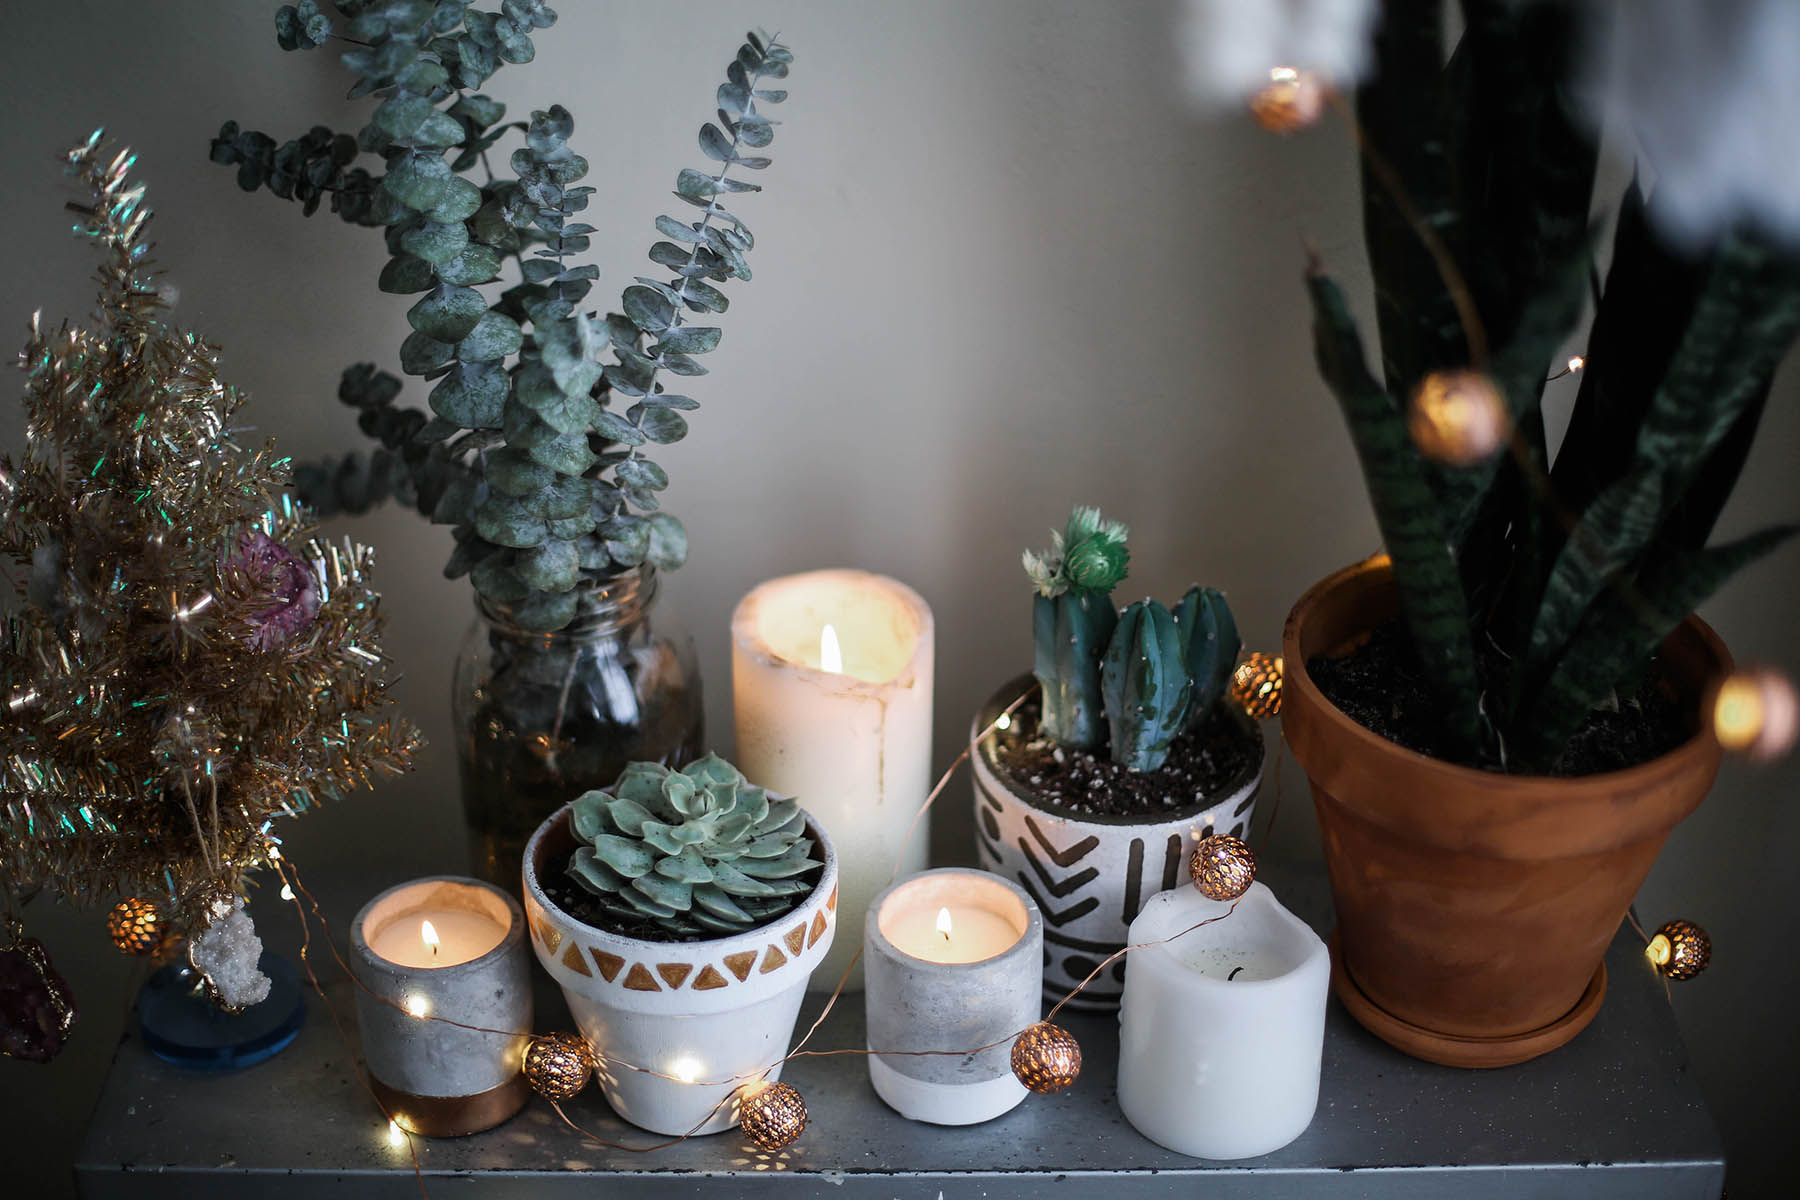 candles, succulents, and planters for cozy bohemian holiday decorations with Urban Outfitters home